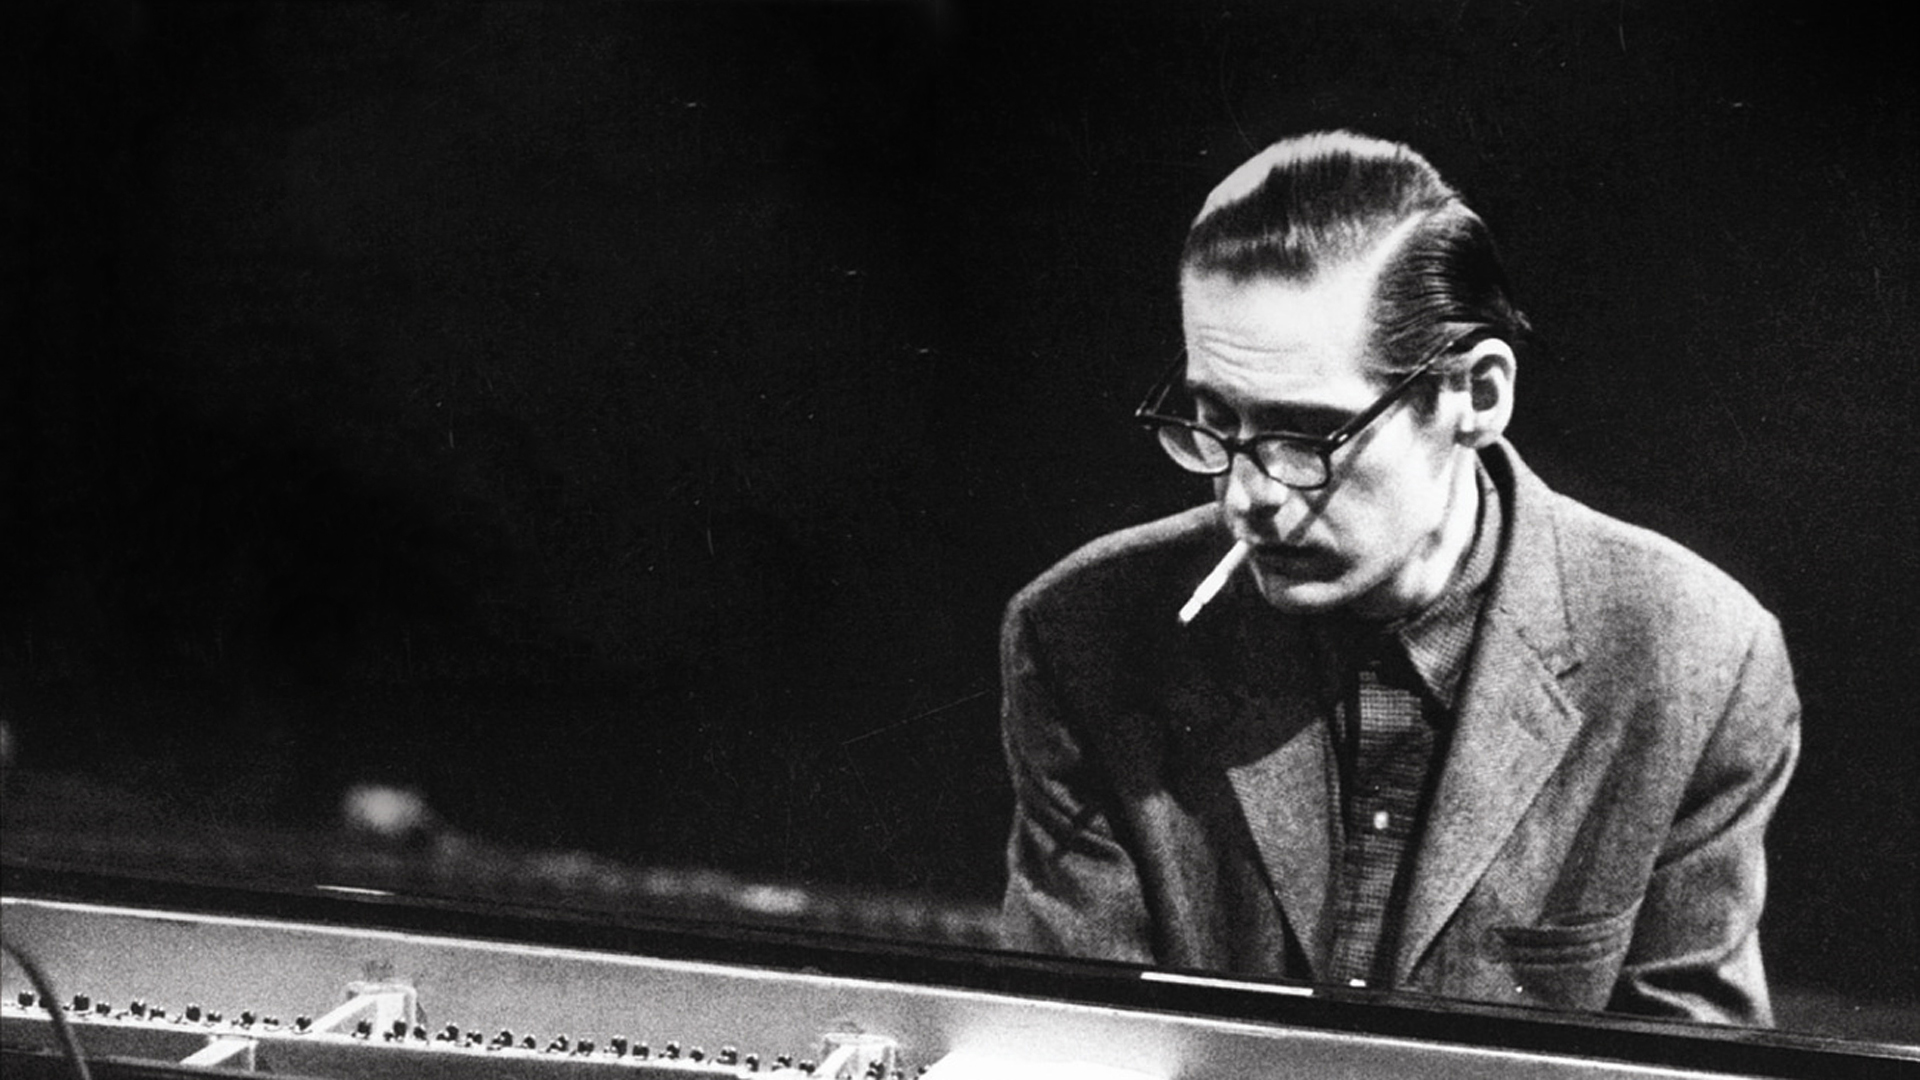 http://kmuw.org/post/check-out-our-web-extras-straight-no-chaser-features-jazz-pianists